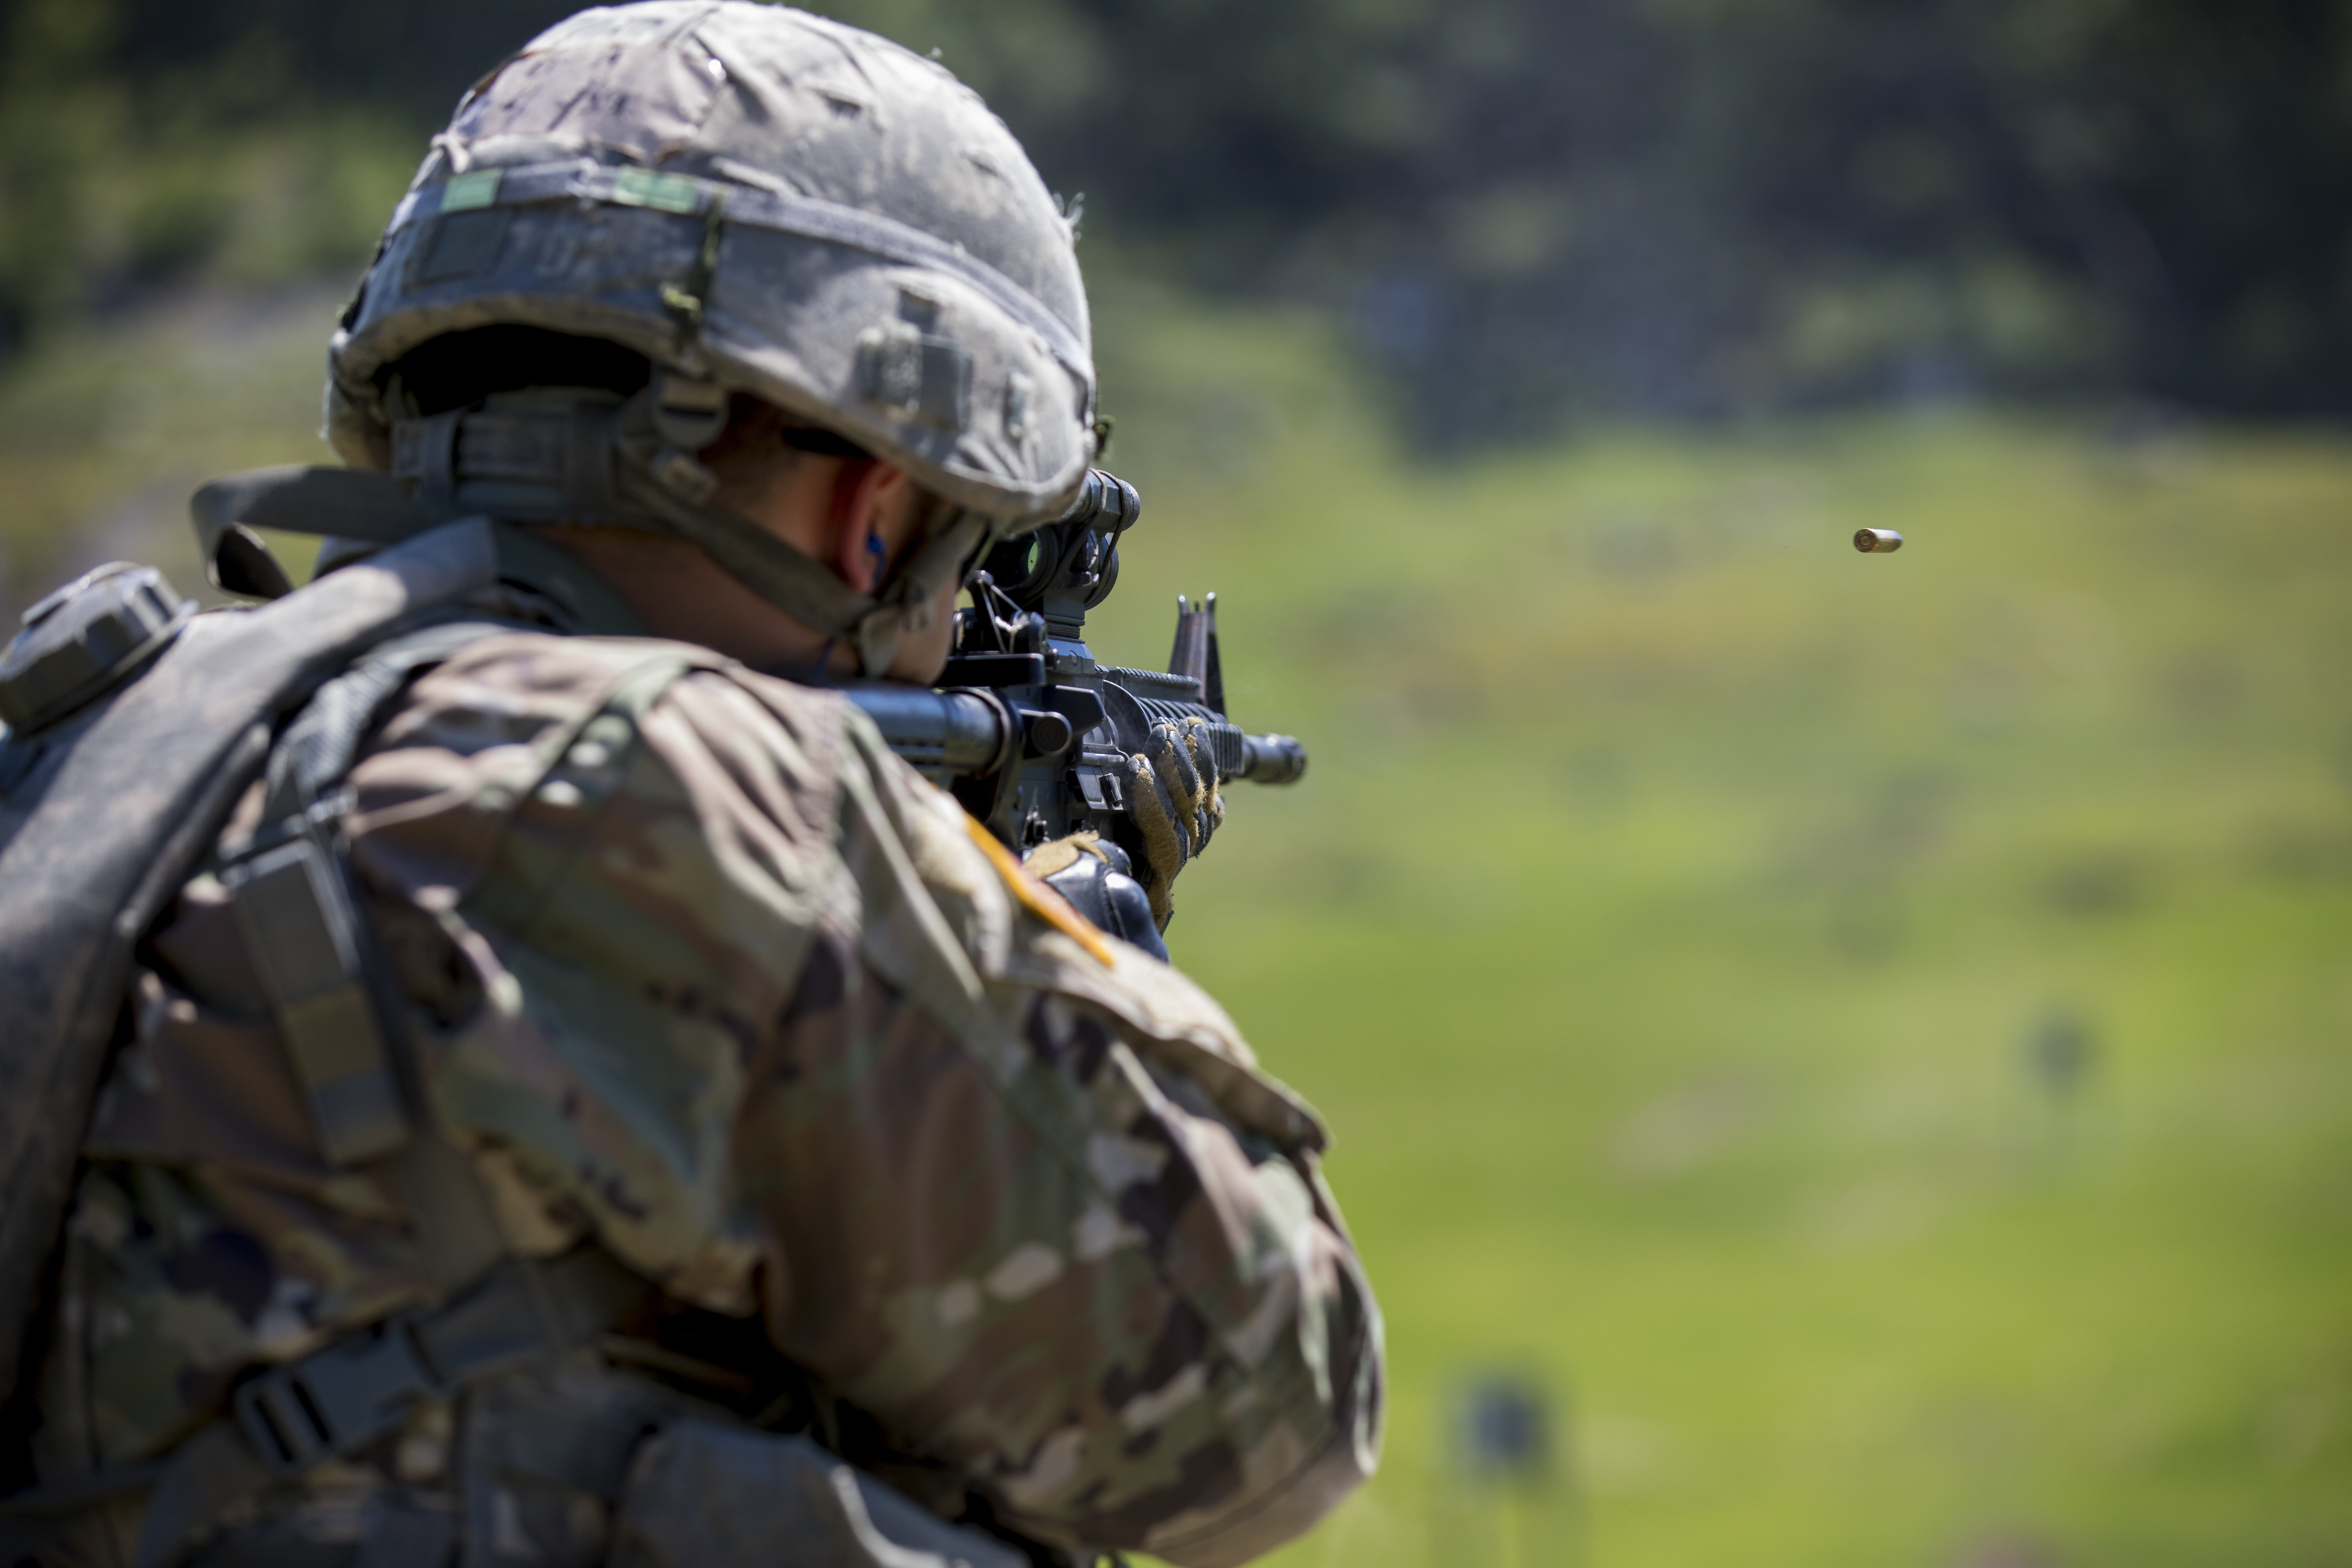 The Army Is Working On An Adorably Tiny Assault Rifle - Task & Purpose